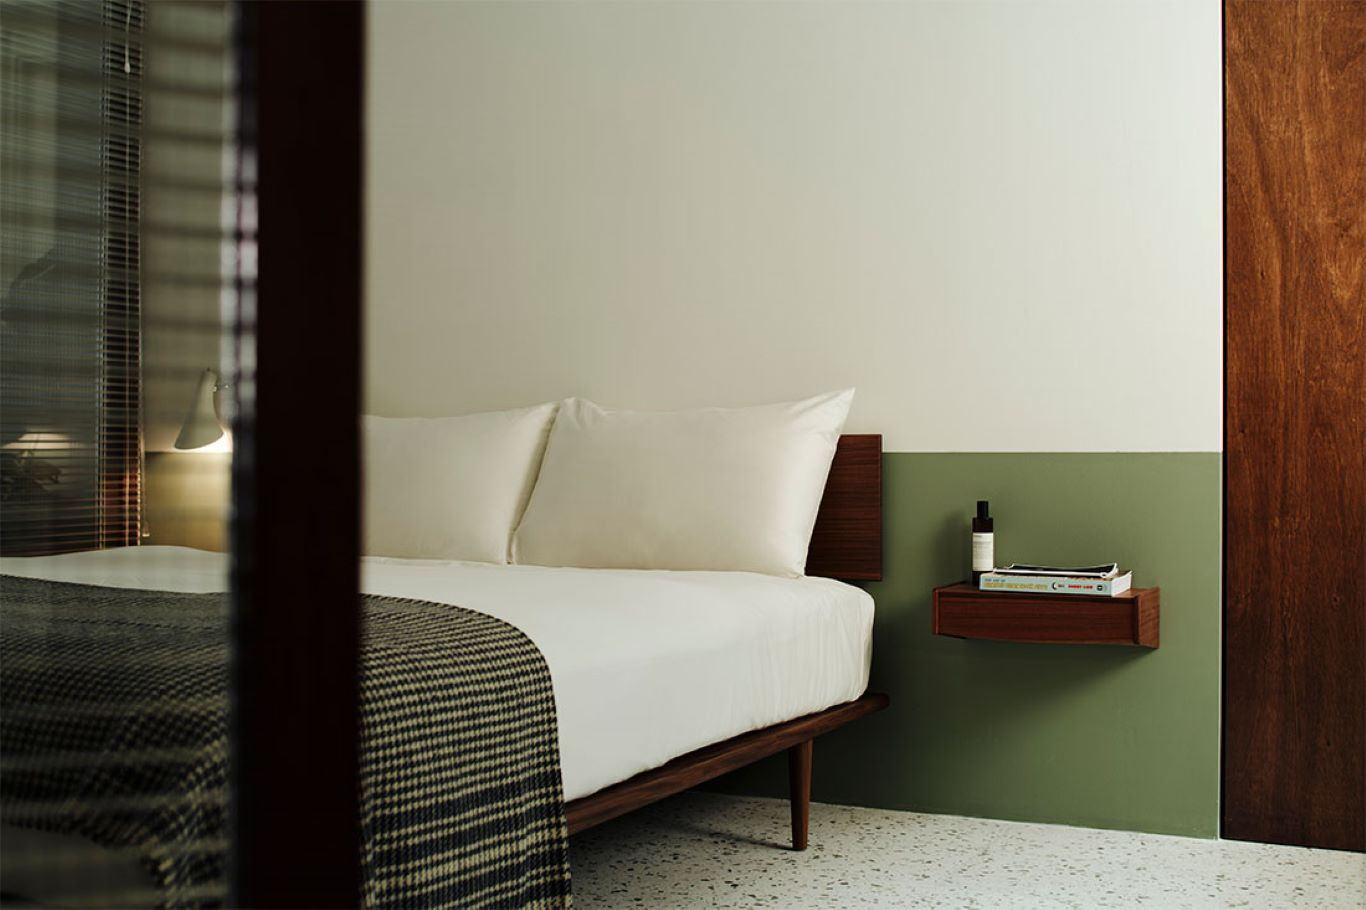 Bed frame on tapered legs atop marble flooring with simple wooden furnishings